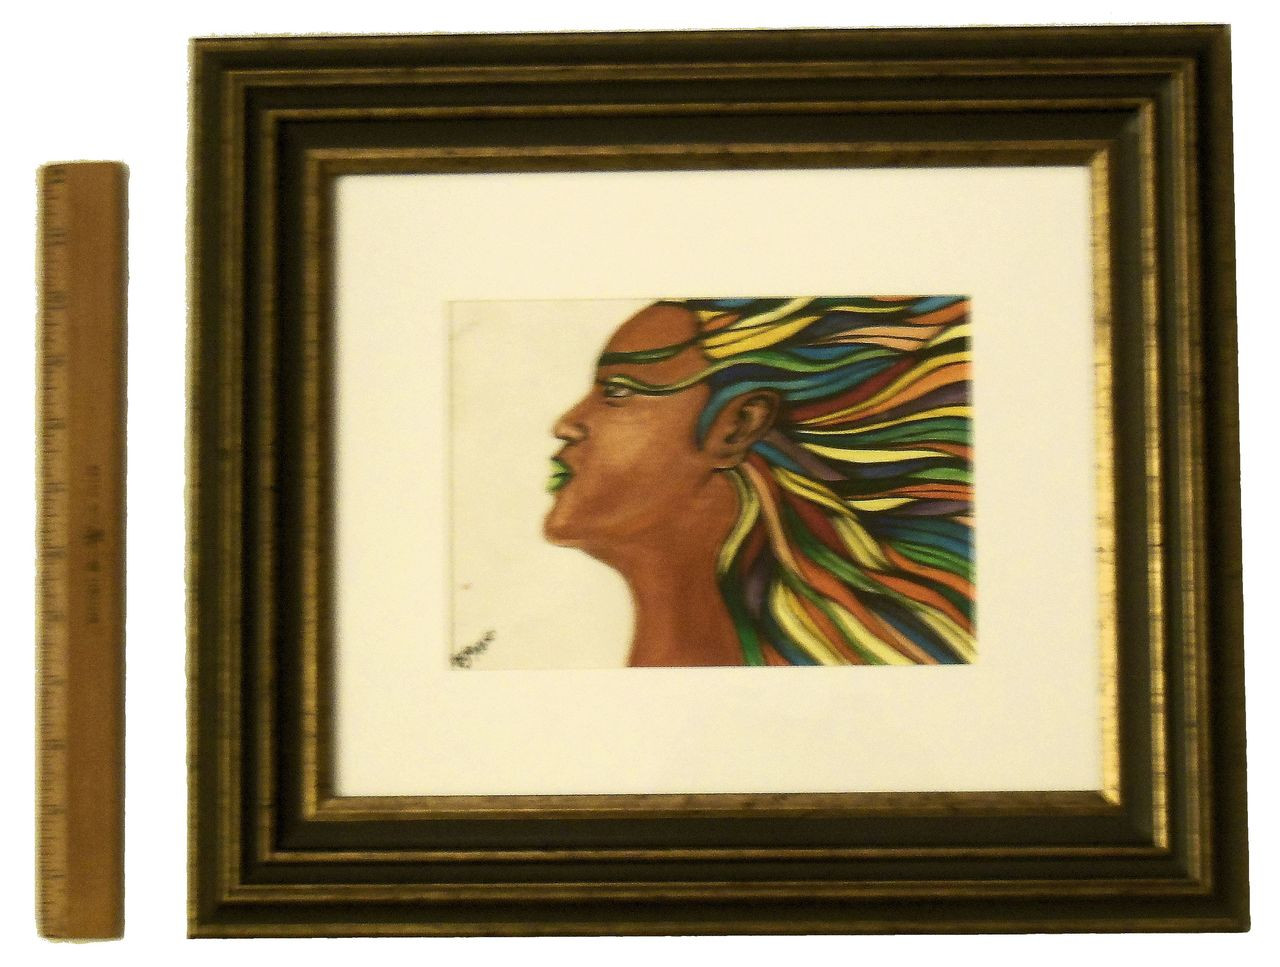 I Am Diversity (Colorful leafy hair).  Framed oil paint on paper.  Zimbabwe Collection